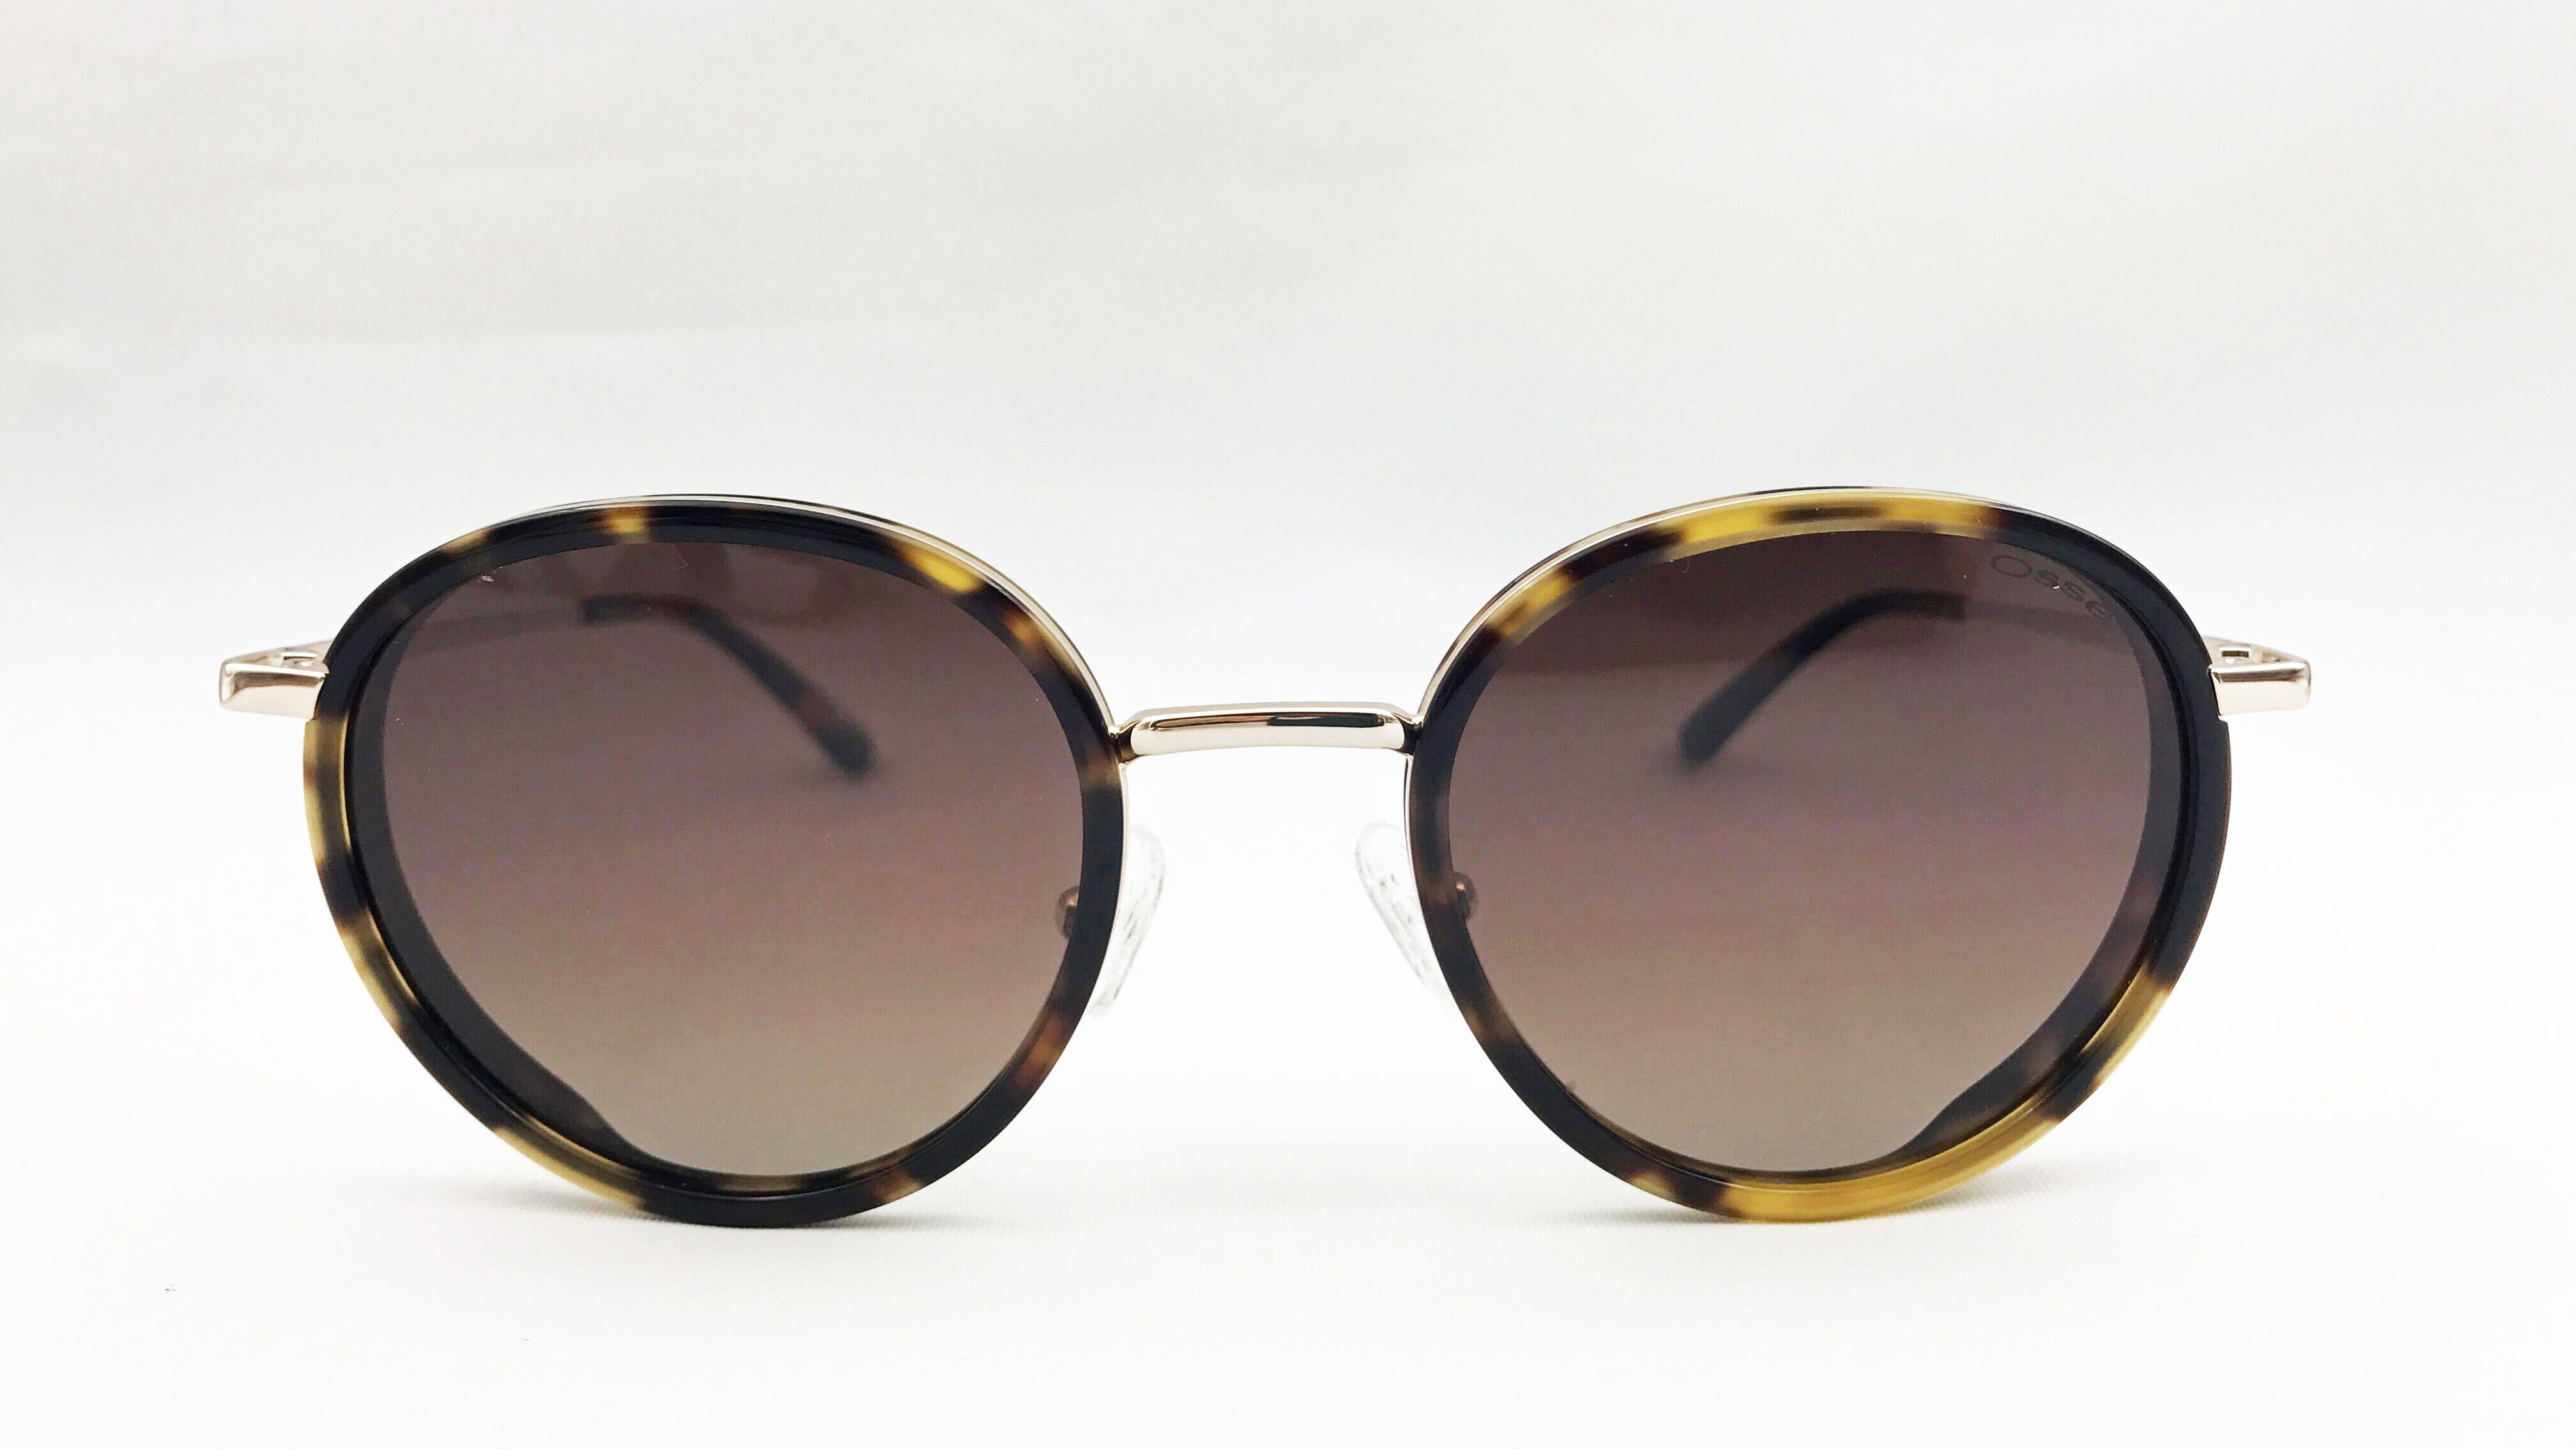 2017 Popular and Super High Quality Sunglasses for Woman.